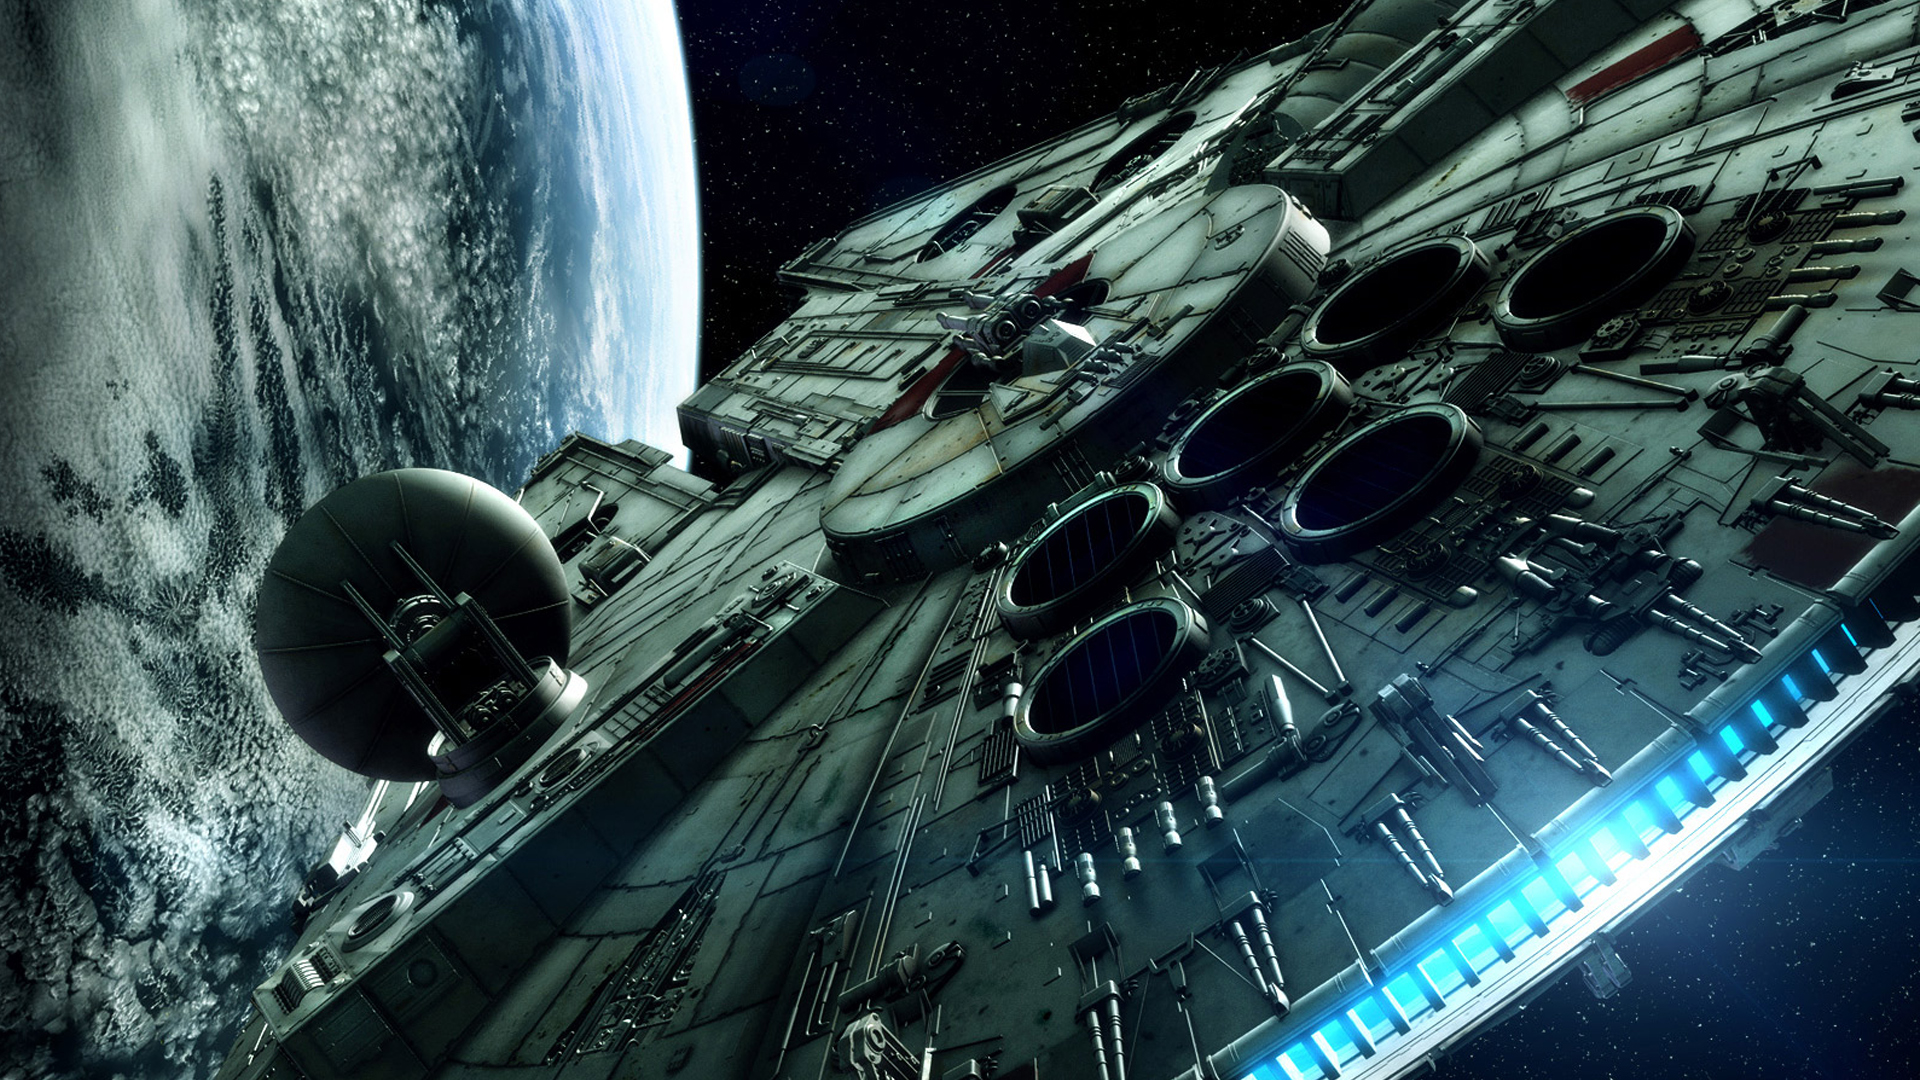 star war movie free download fbulous hd widescreen wallpapers of star 1920x1080